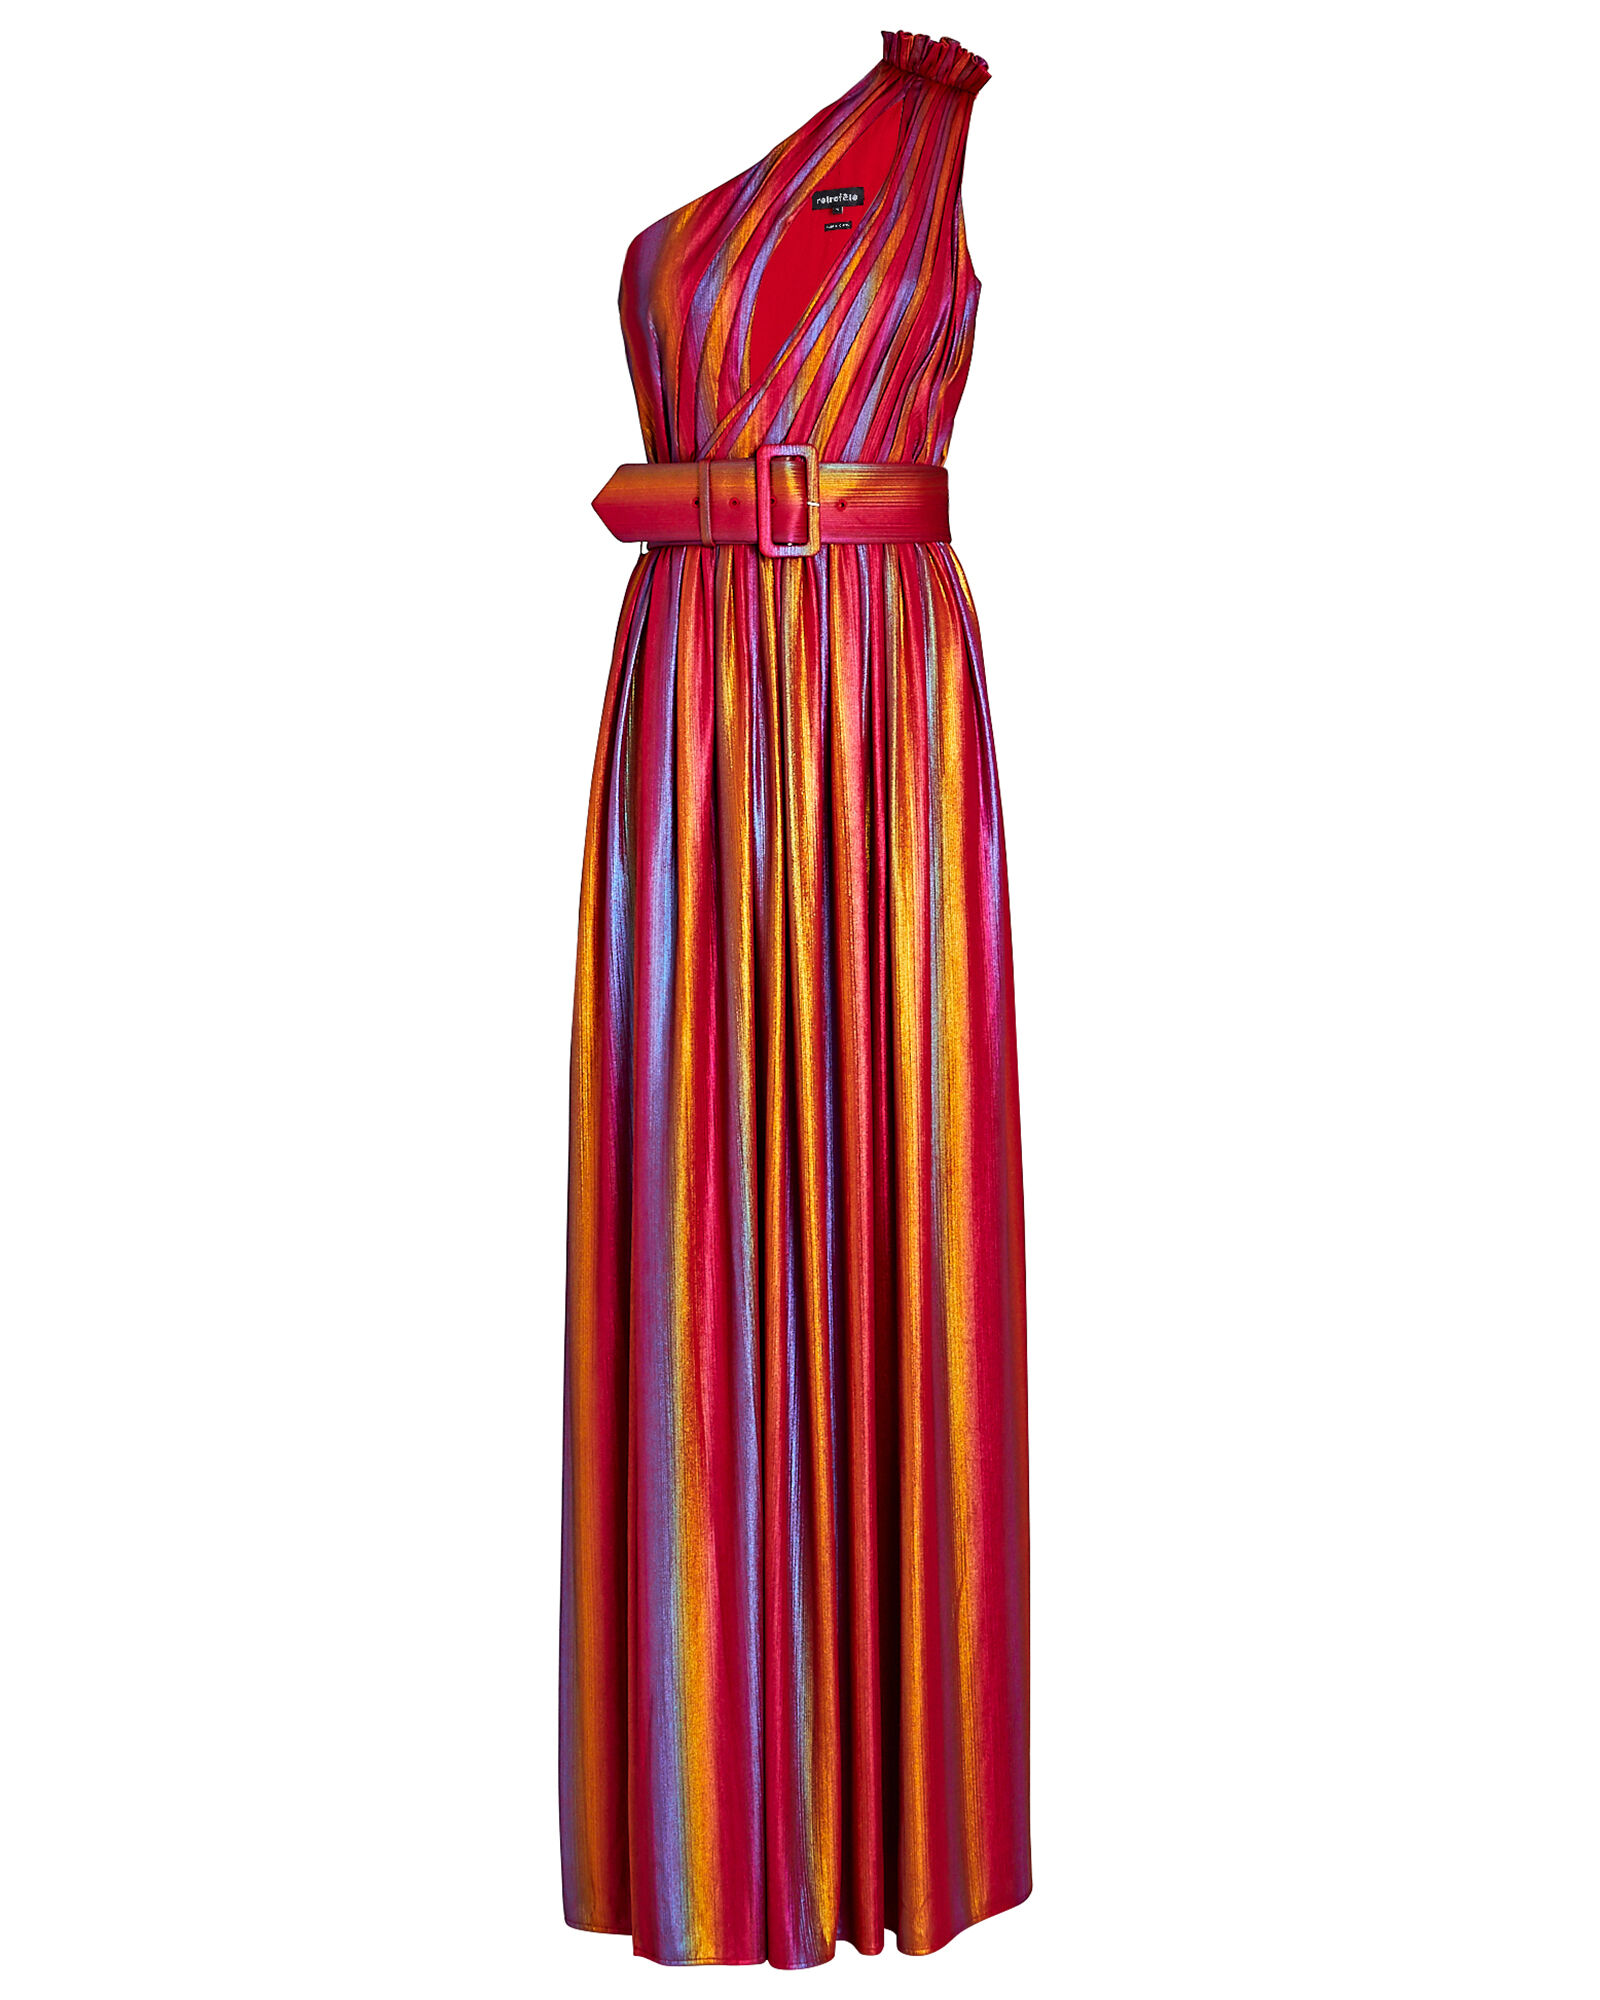 Andrea Rainbow Lamé Maxi Dress, MULTI, hi-res